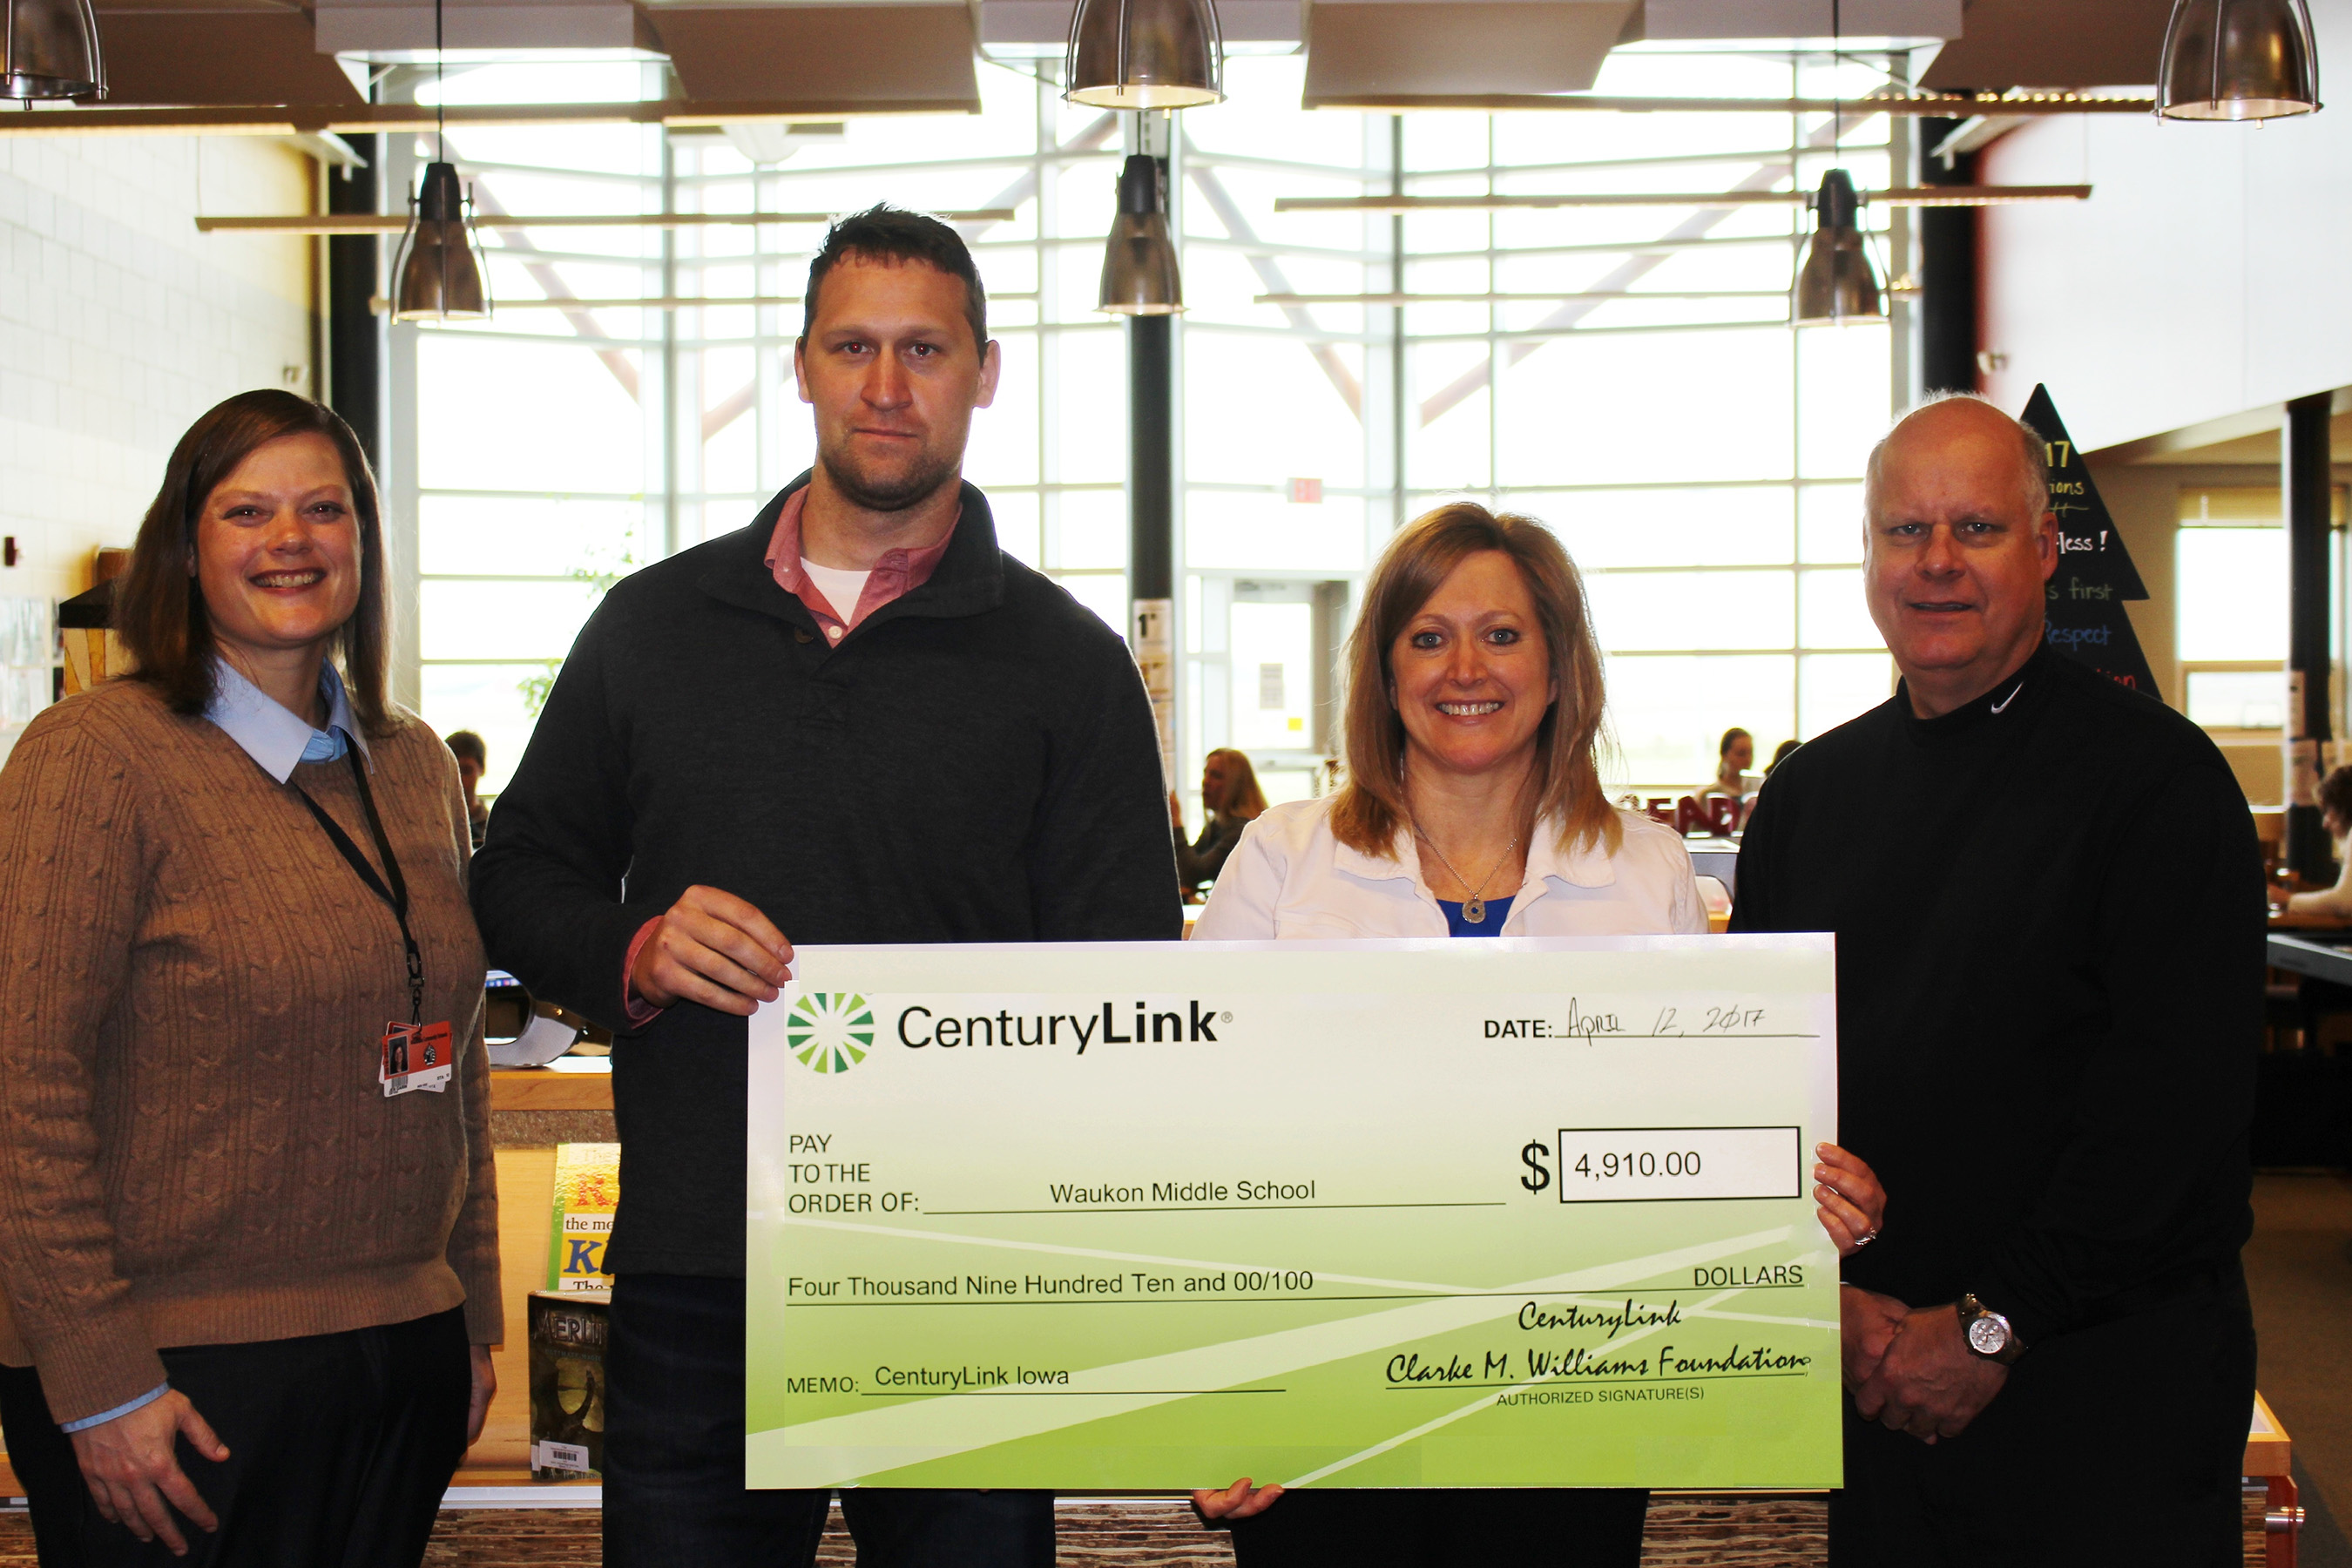 CenturyLink to offer more than $1.4 million in grants to help support technology in the classroom